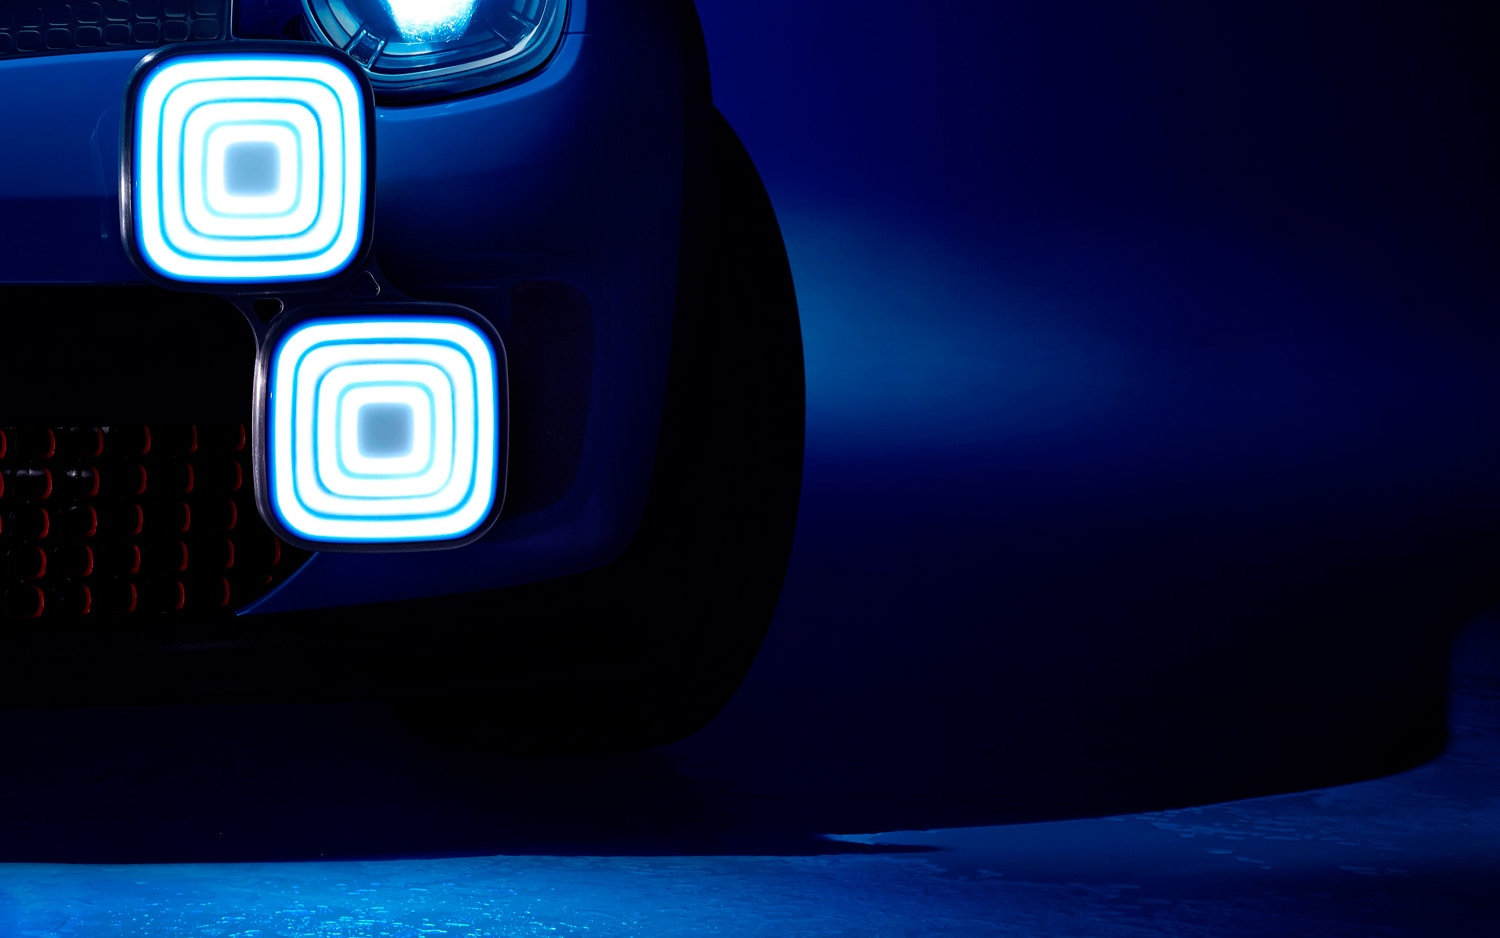 Renault Concept Car Teaser Headlamp Detail View1